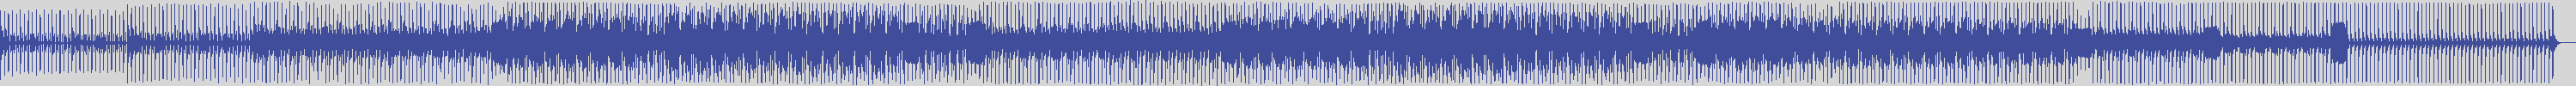 just_digital_records [JS1316] 40 Drums - Power Extreme [Slow Bass] audio wave form